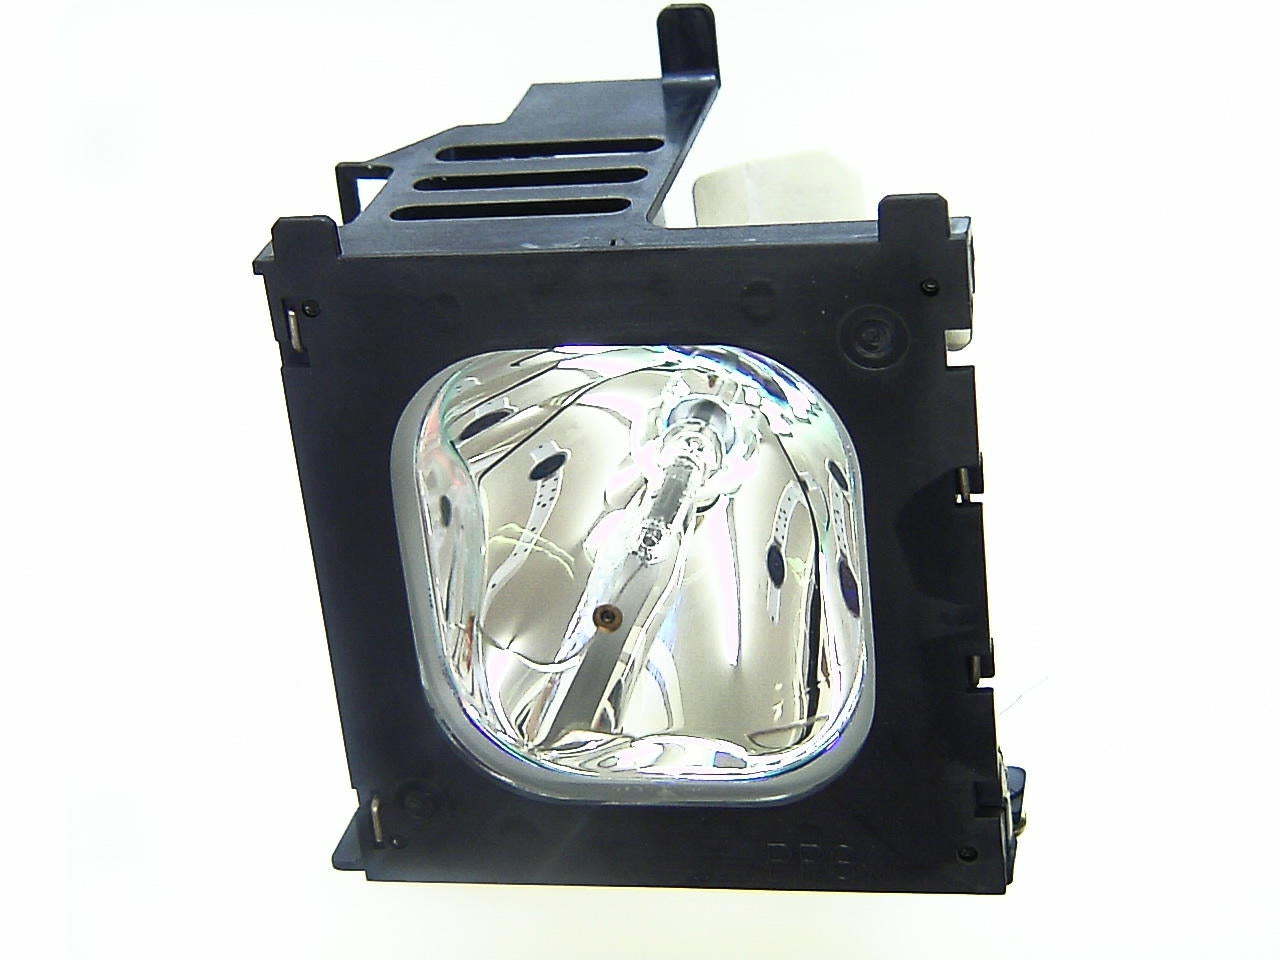 Dukane 456-204 Projector Lamp